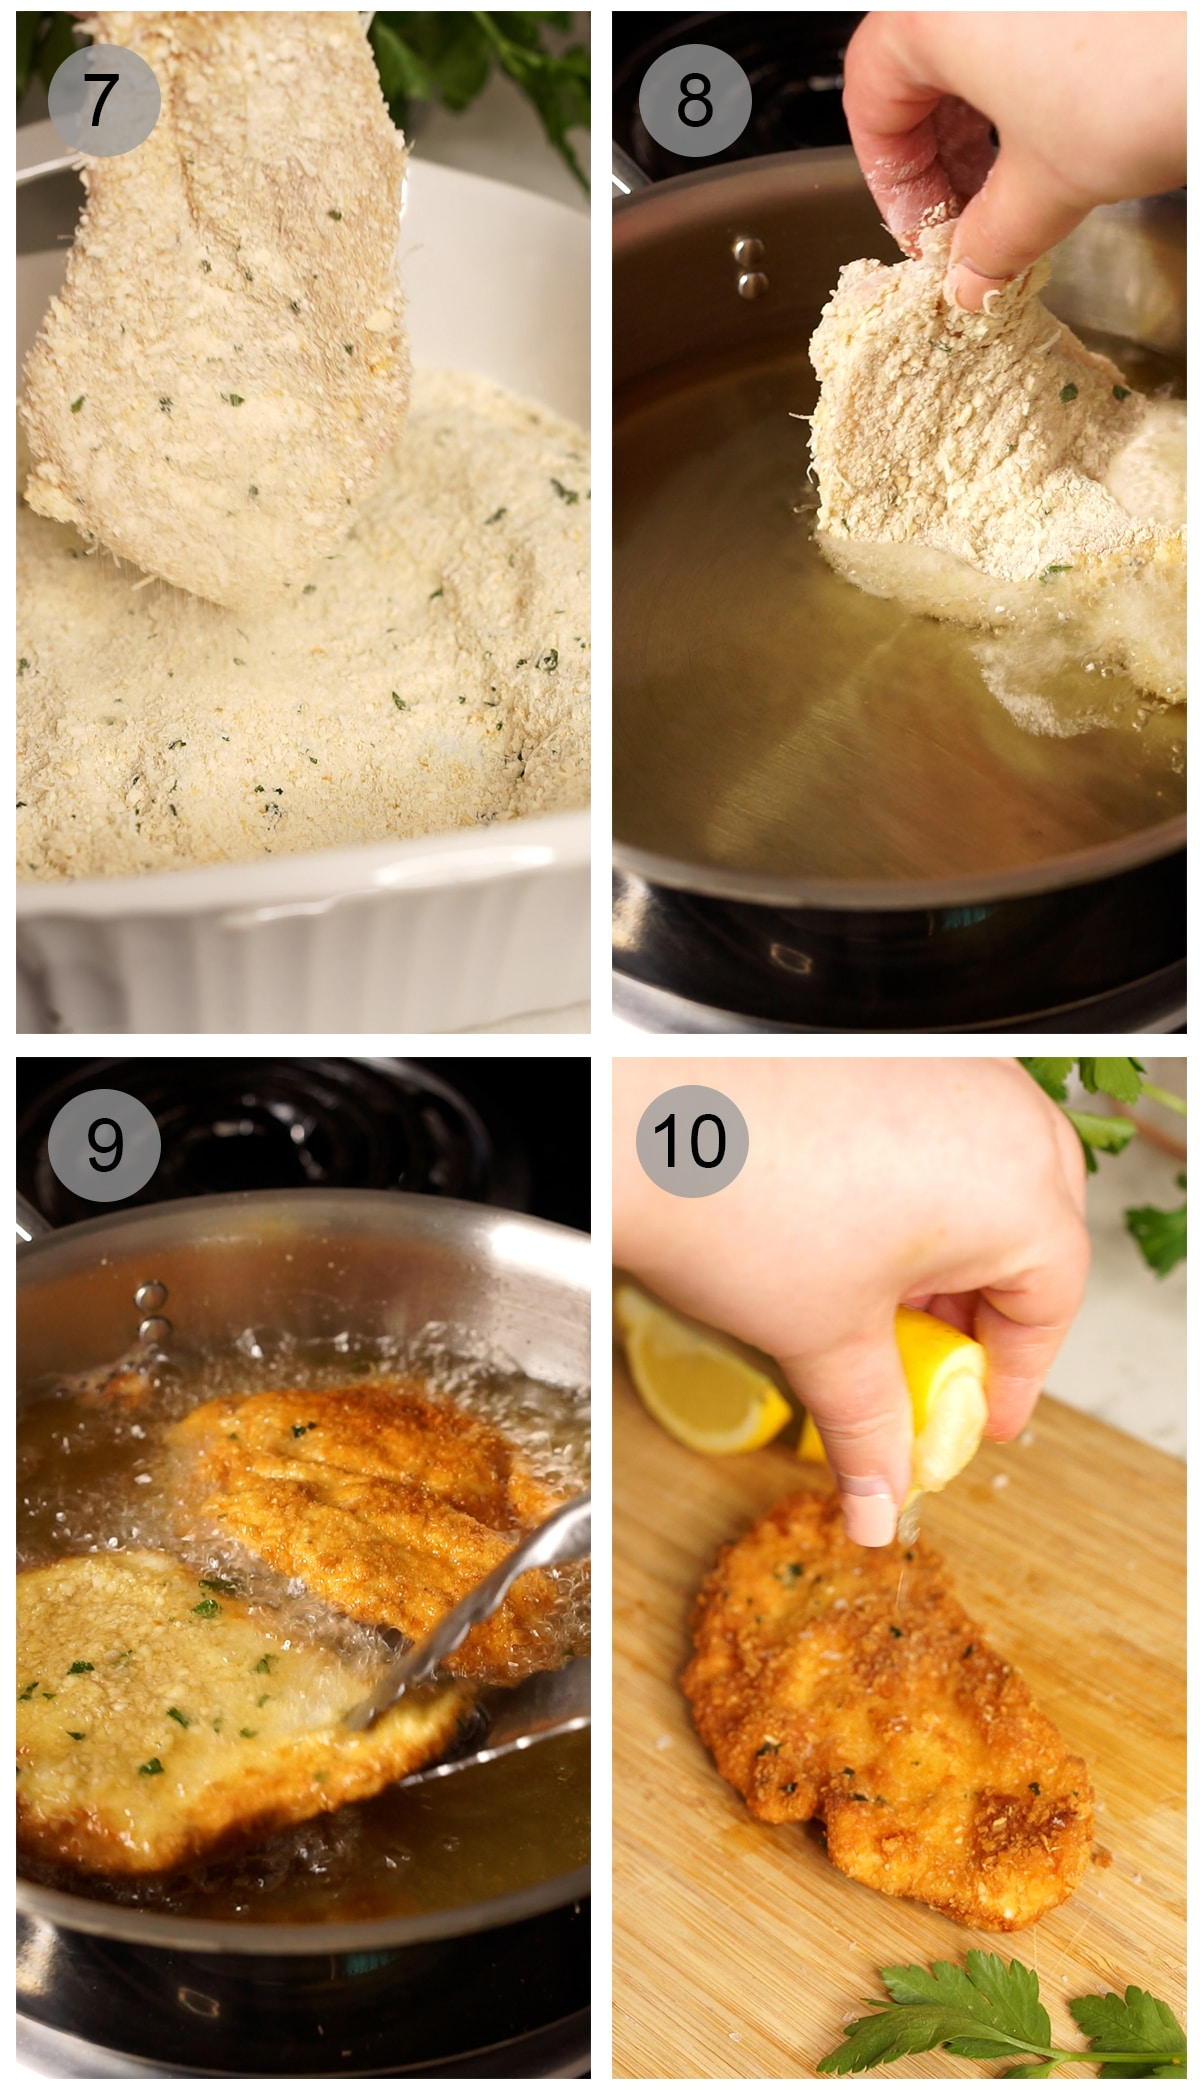 Step-by-step photos on making Italian chicken cutlets. Numbers 7-10.